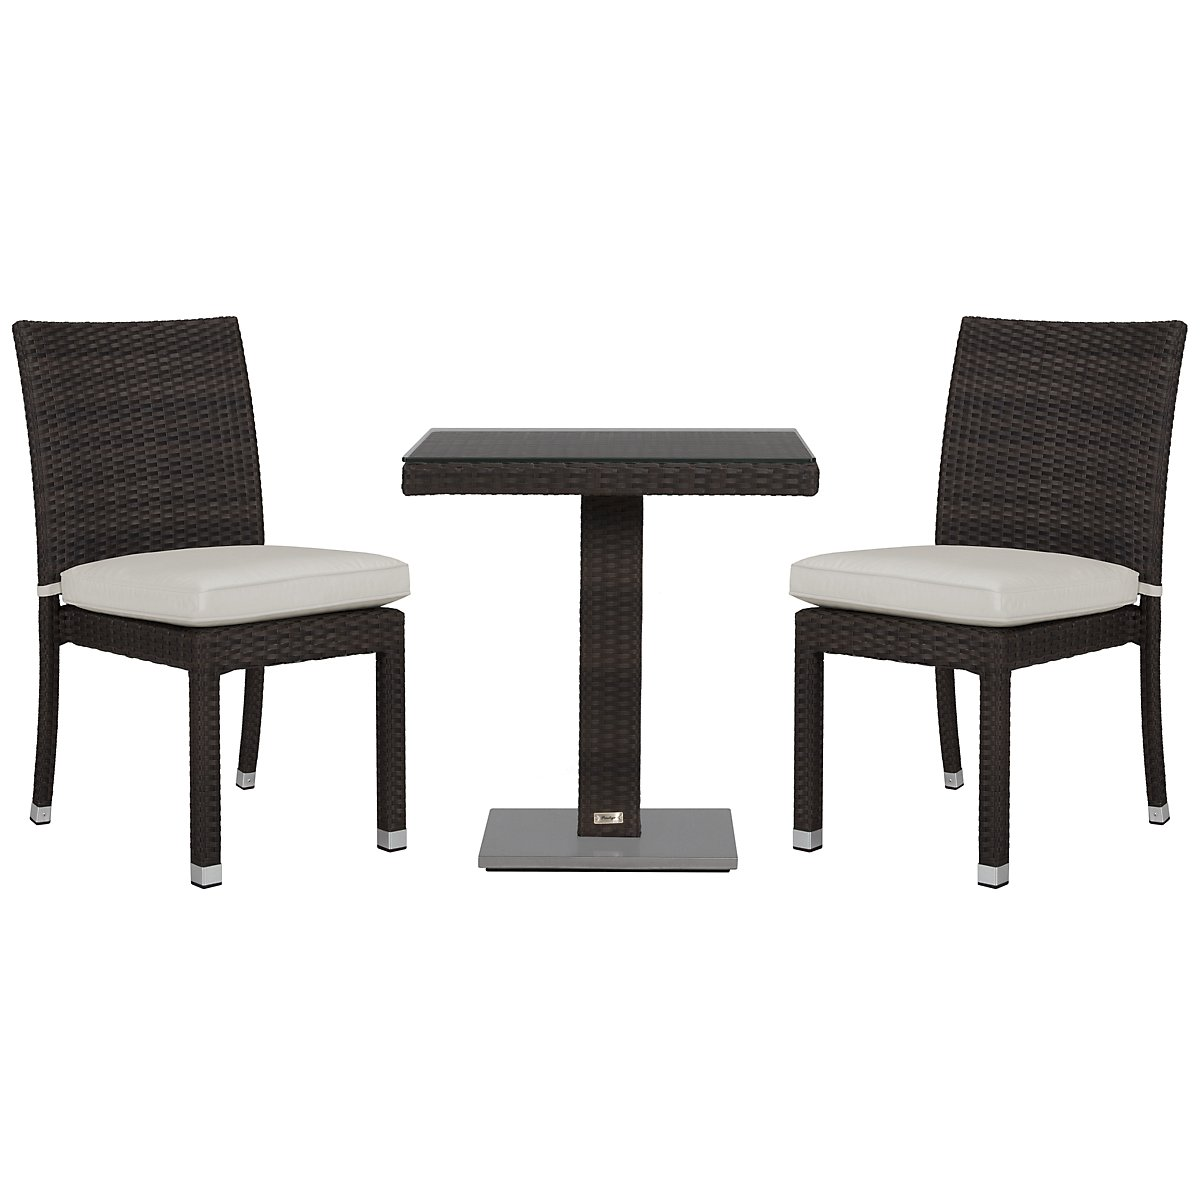 "Zen White 27"" Square Table & 2 Chairs"